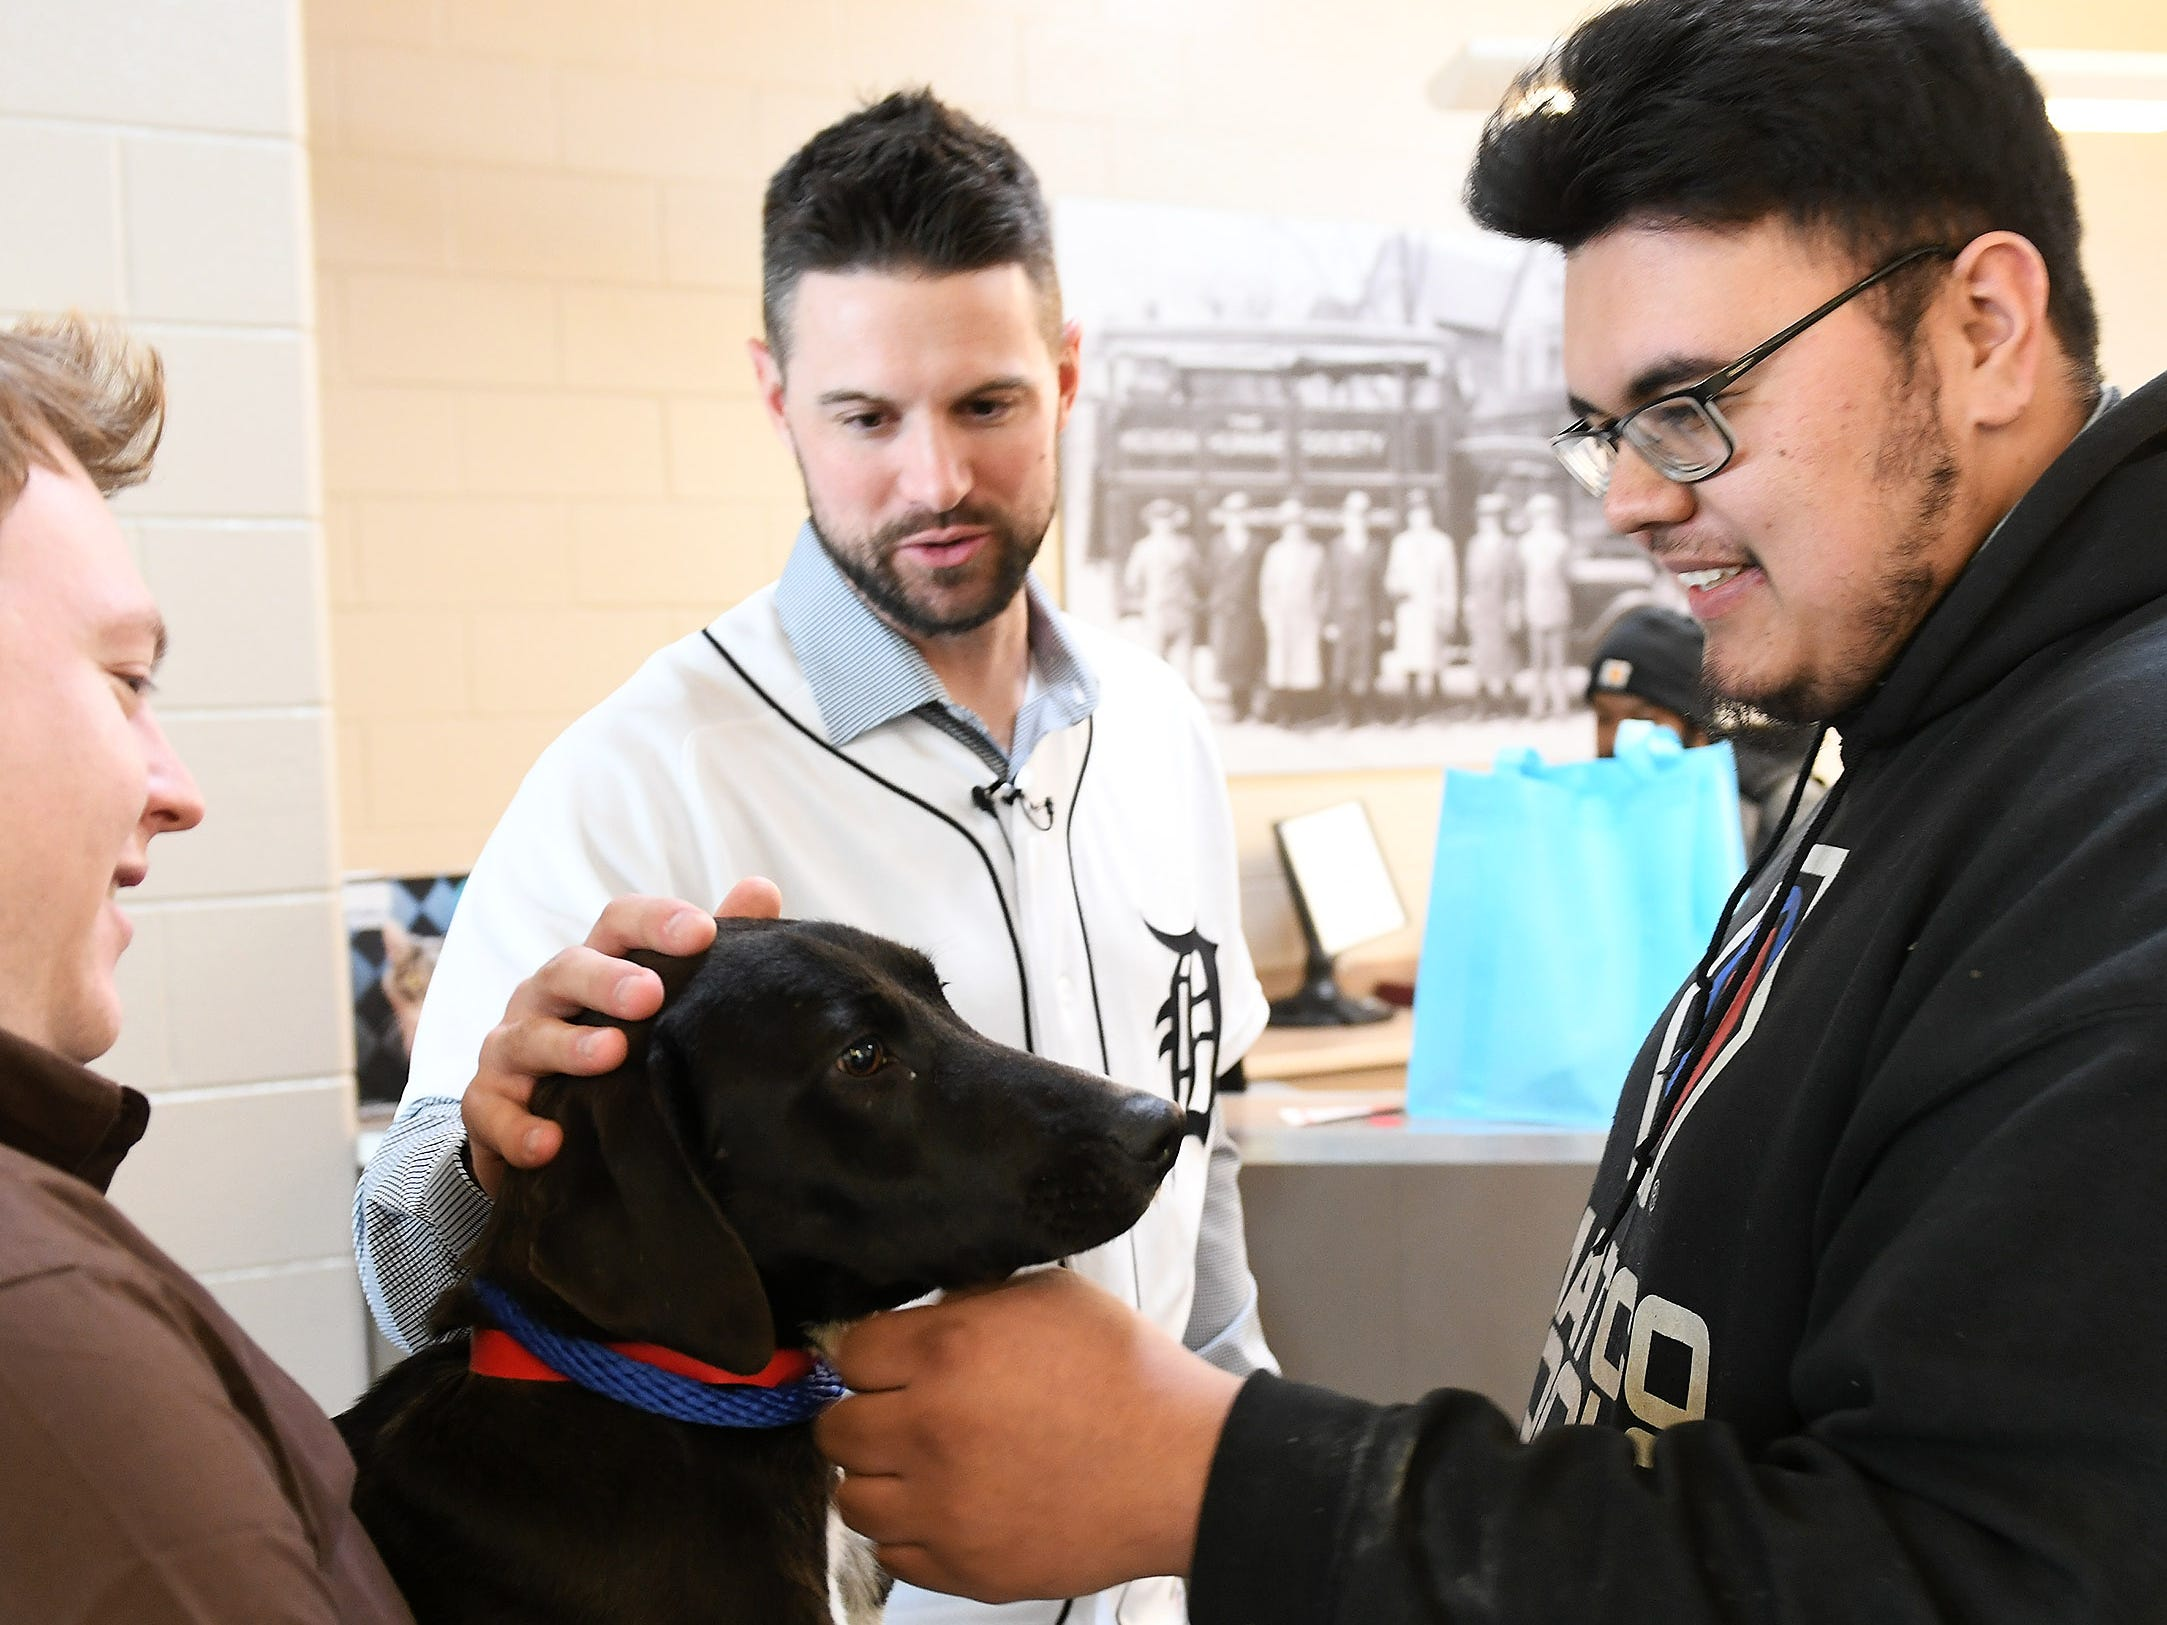 While Michigan Humane Society animal transport driver Jeremy Colborn holds her, Tigers shortstop Jordy Mercer and Marcelo Alvarado, 24, of Detroit, right, pet Lark, a Labrador that Marcelo is adopting, at the Michigan Humane Society.